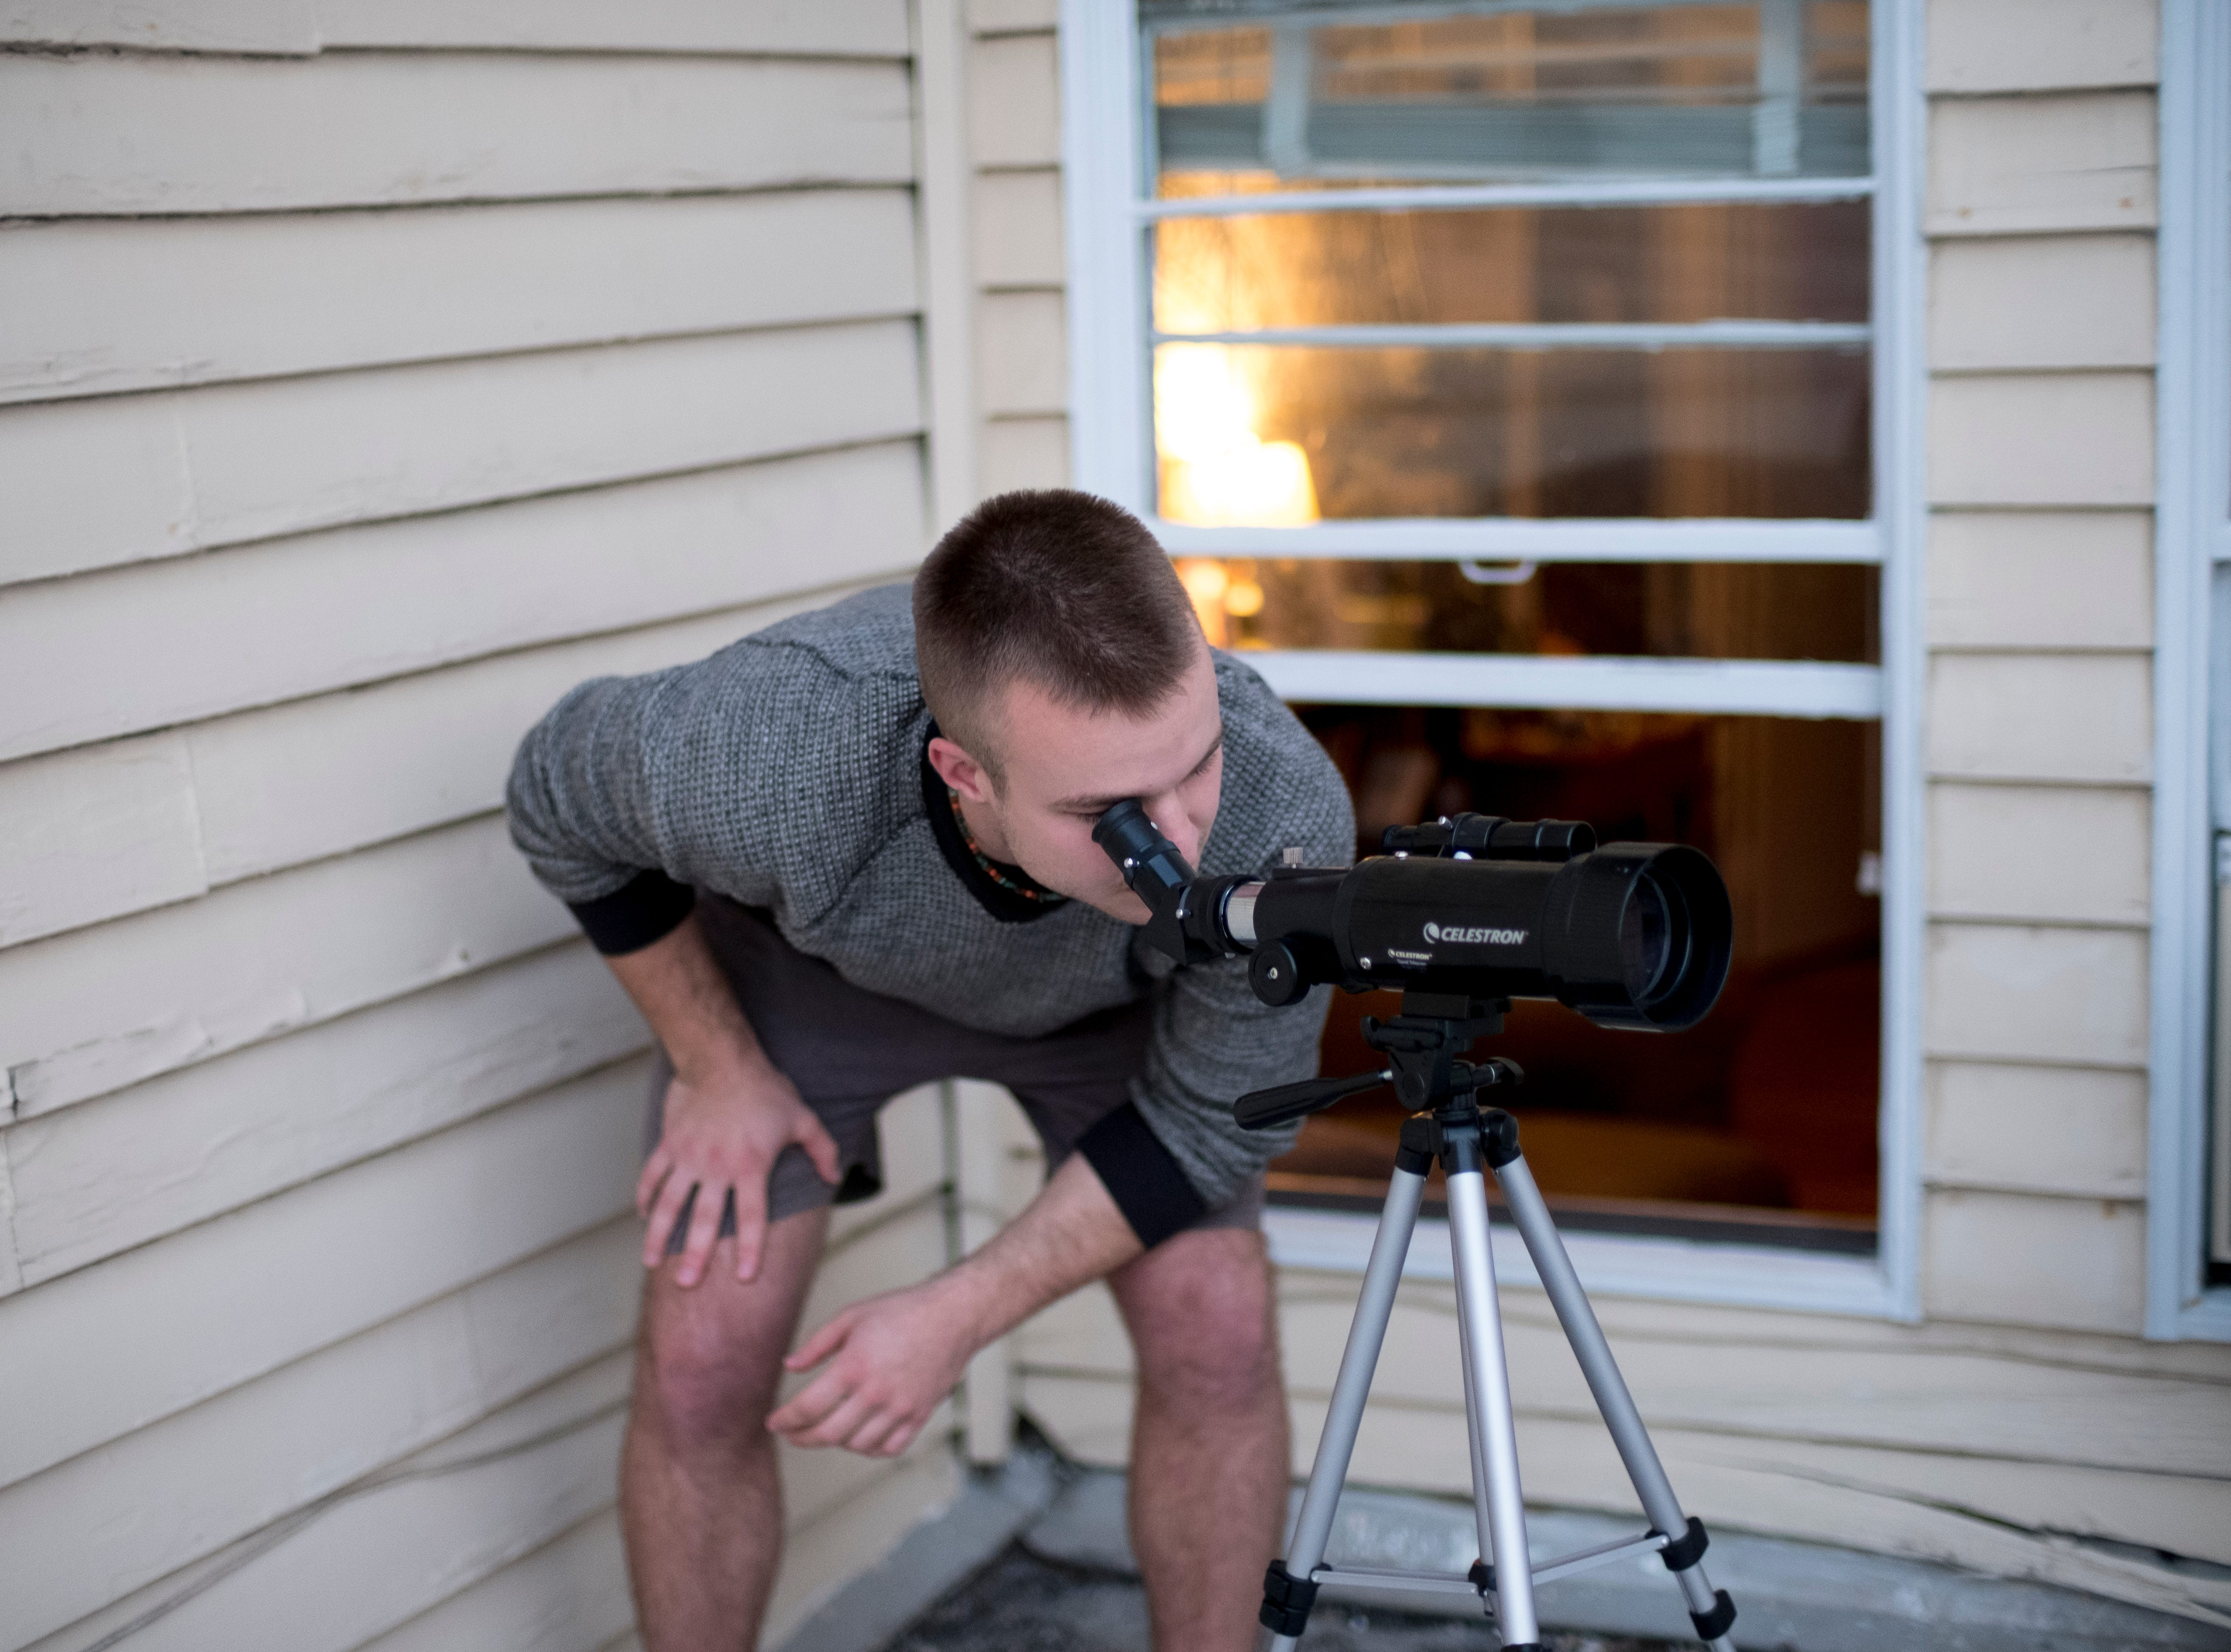 Cole Hoffman watches the 'super worm equinox supermoon' rise with a Celestron telescope he got for Christmas from the roof of his home on Laurel Ave in Knoxville, Tennessee on Wednesday, March 20, 2019. The last supermoon of 2019 gets its name since it coincides with the spring equinox and folklore where it says as the frosty ground melts, earthworms begin emerging.